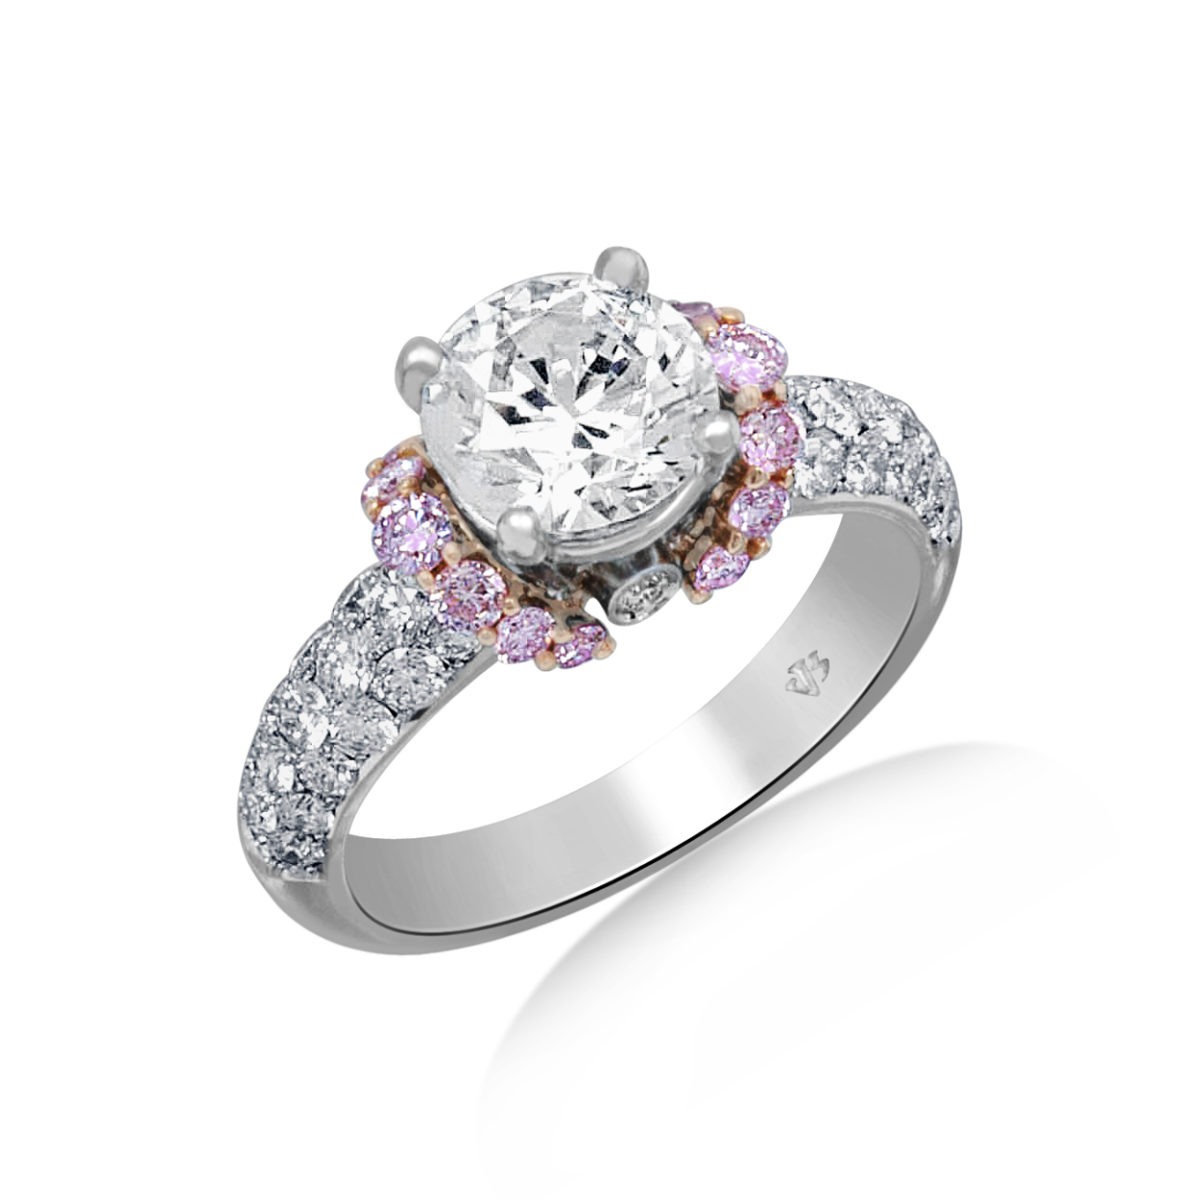 kelege engagement ring with pink